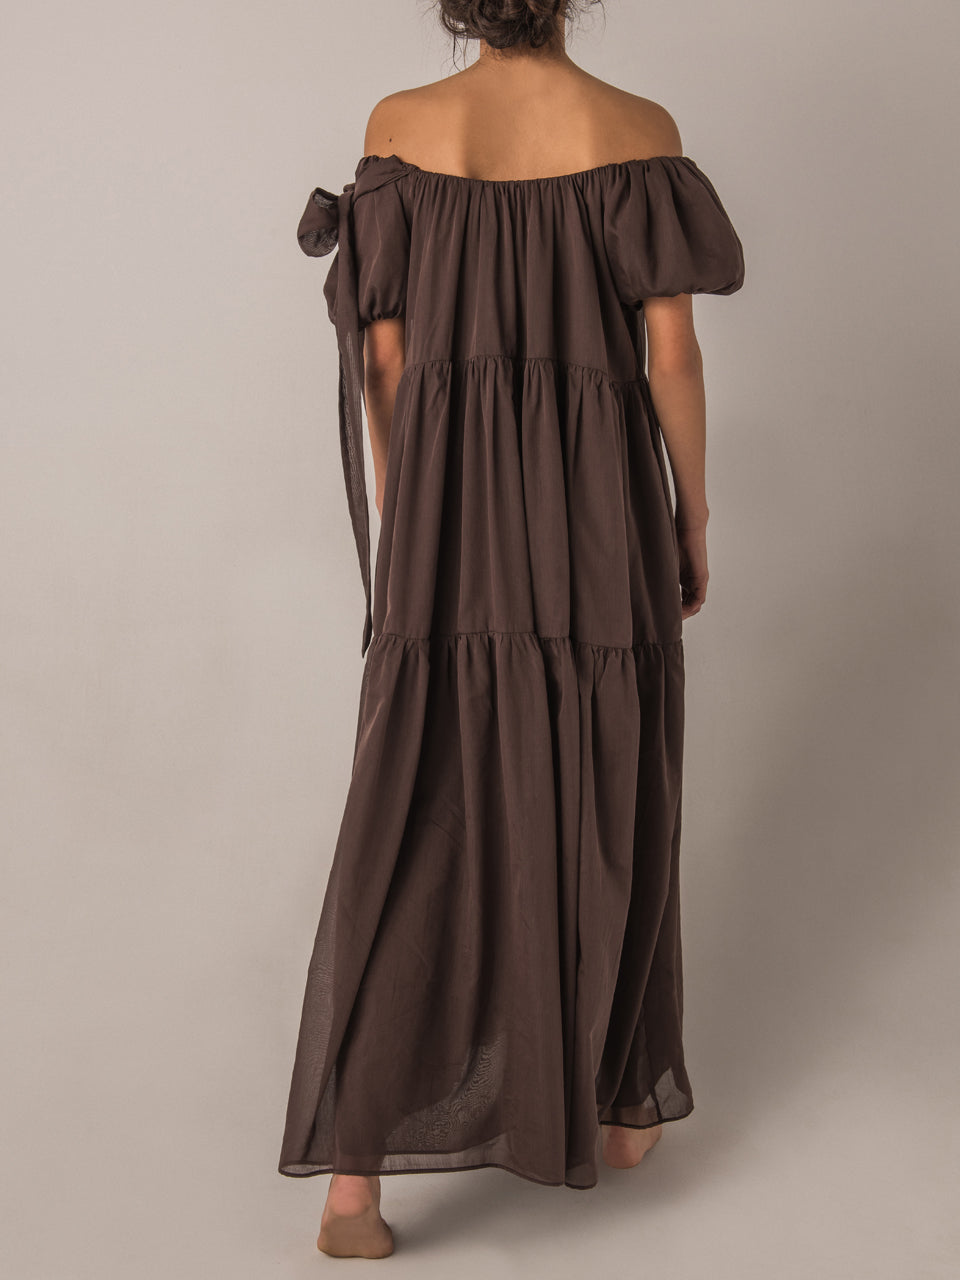 Joanne Balloon Maxi Dress